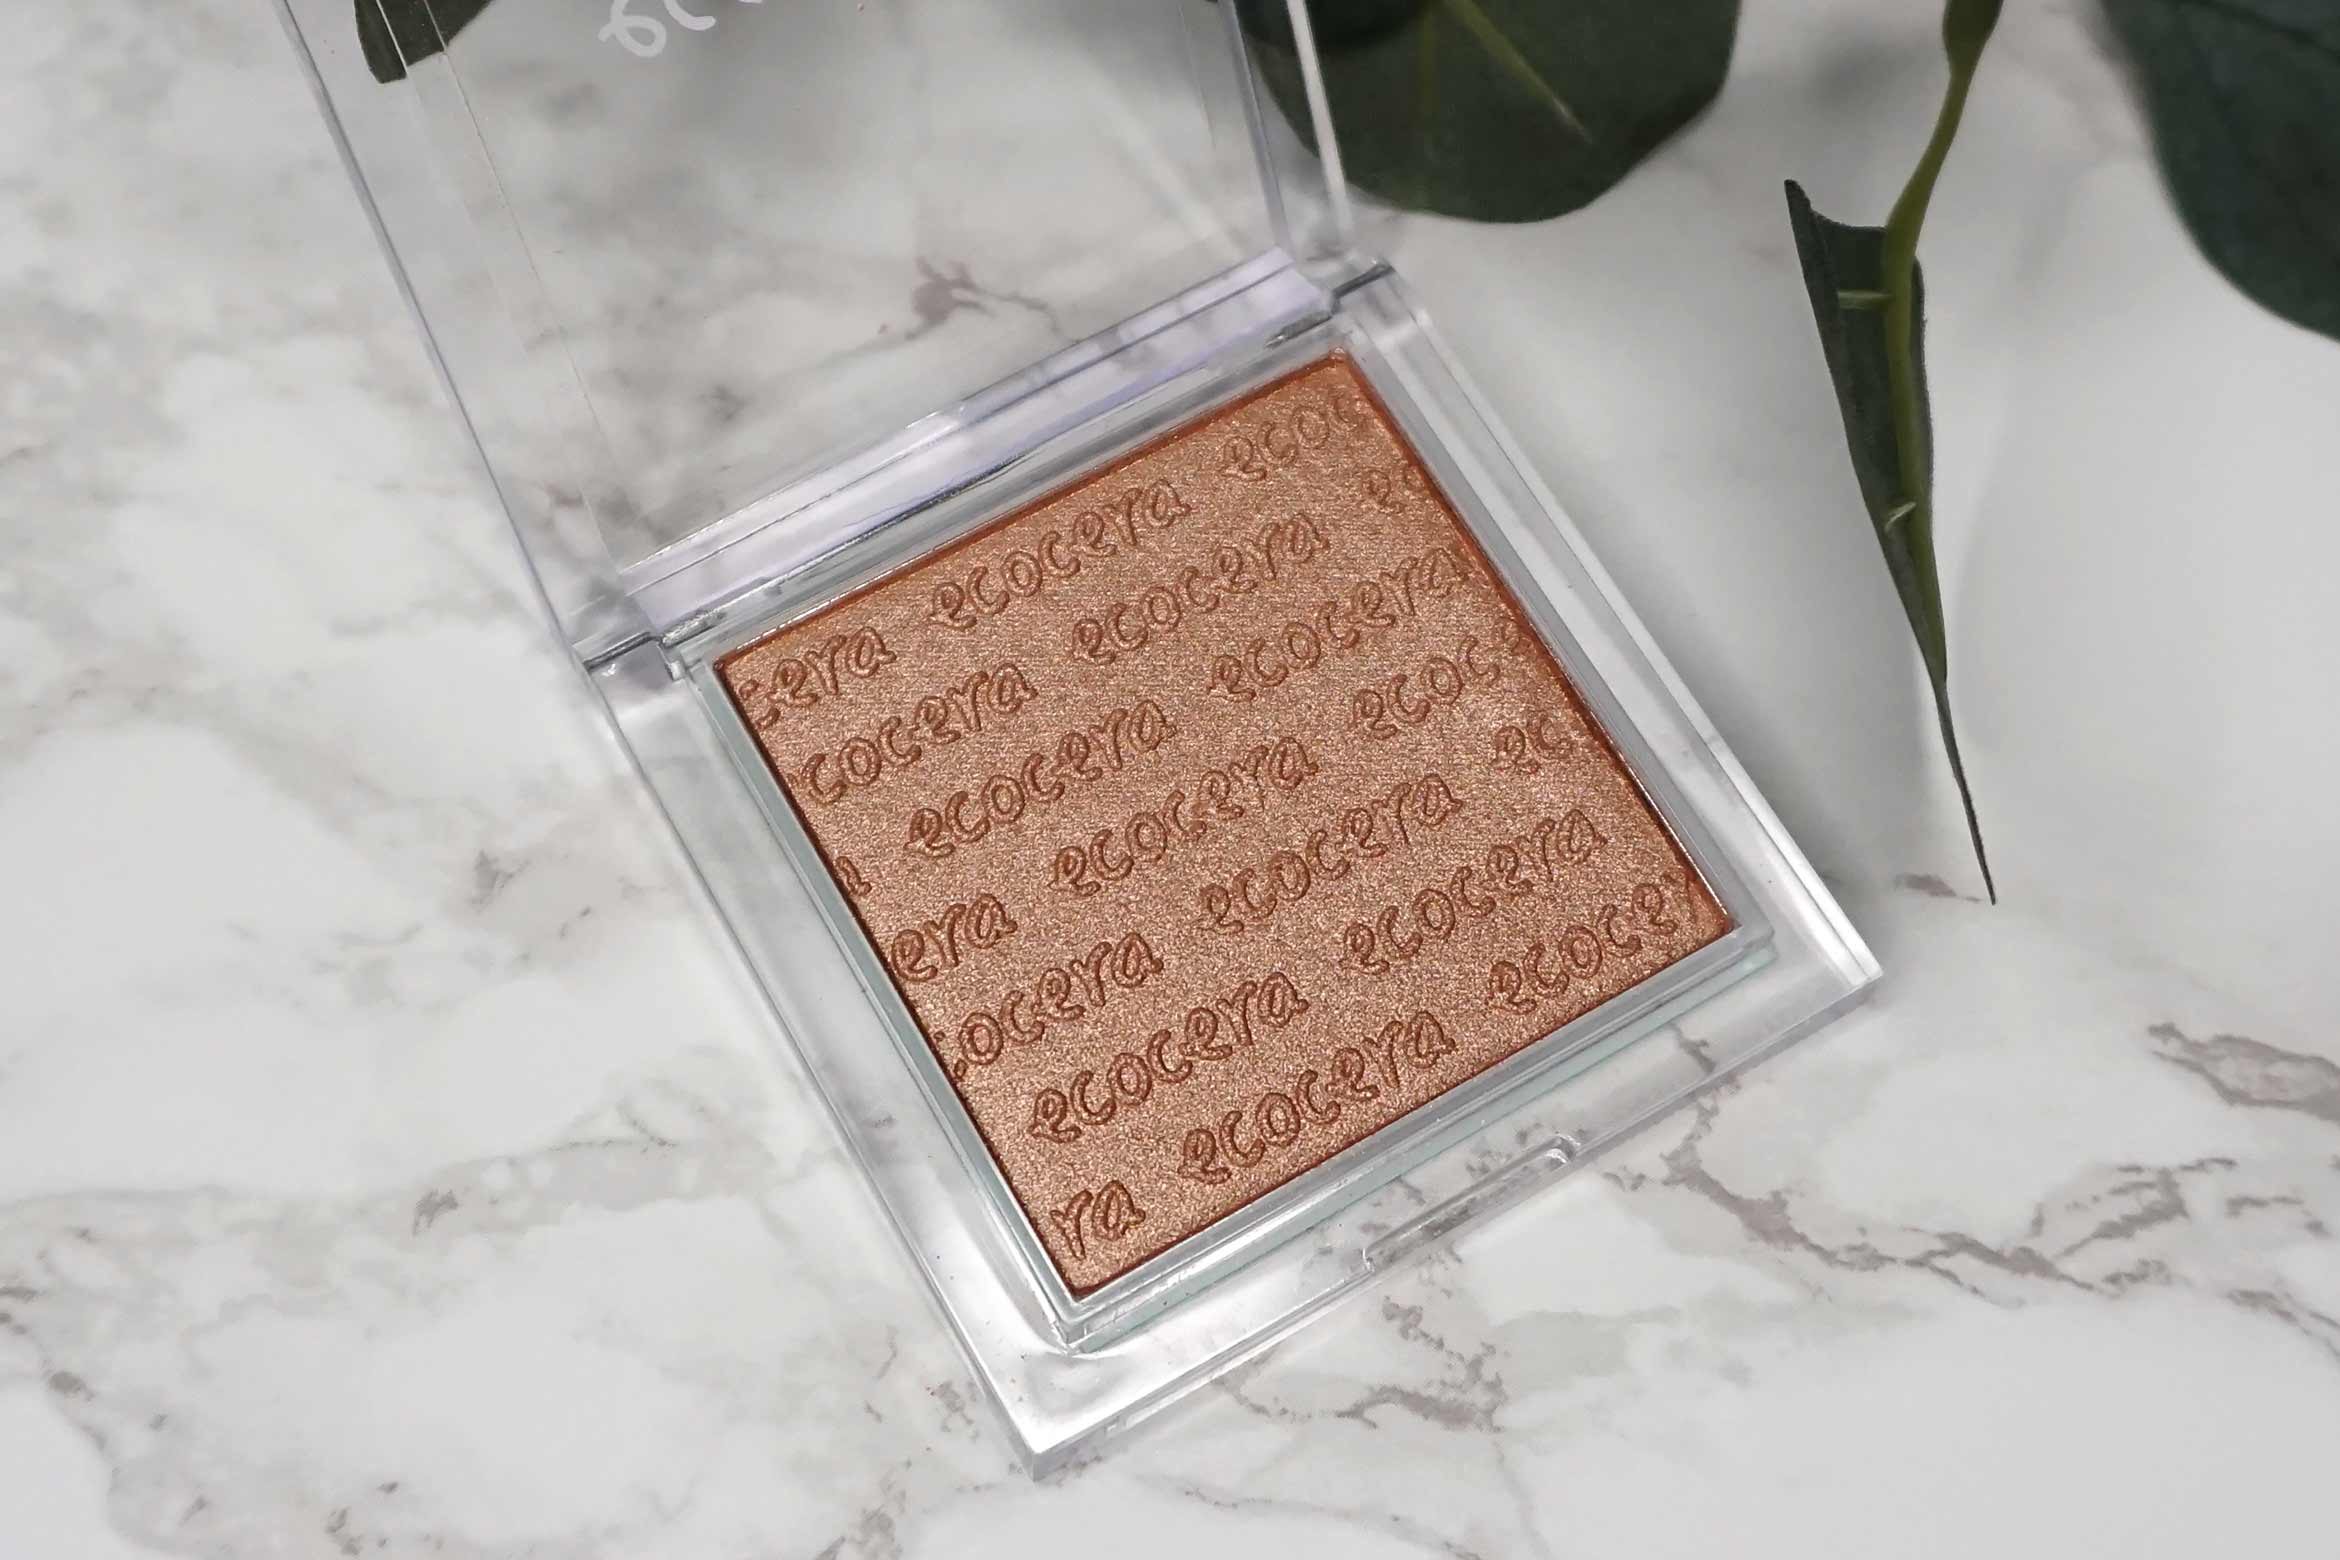 Ecocera-india-bronzer-review-2